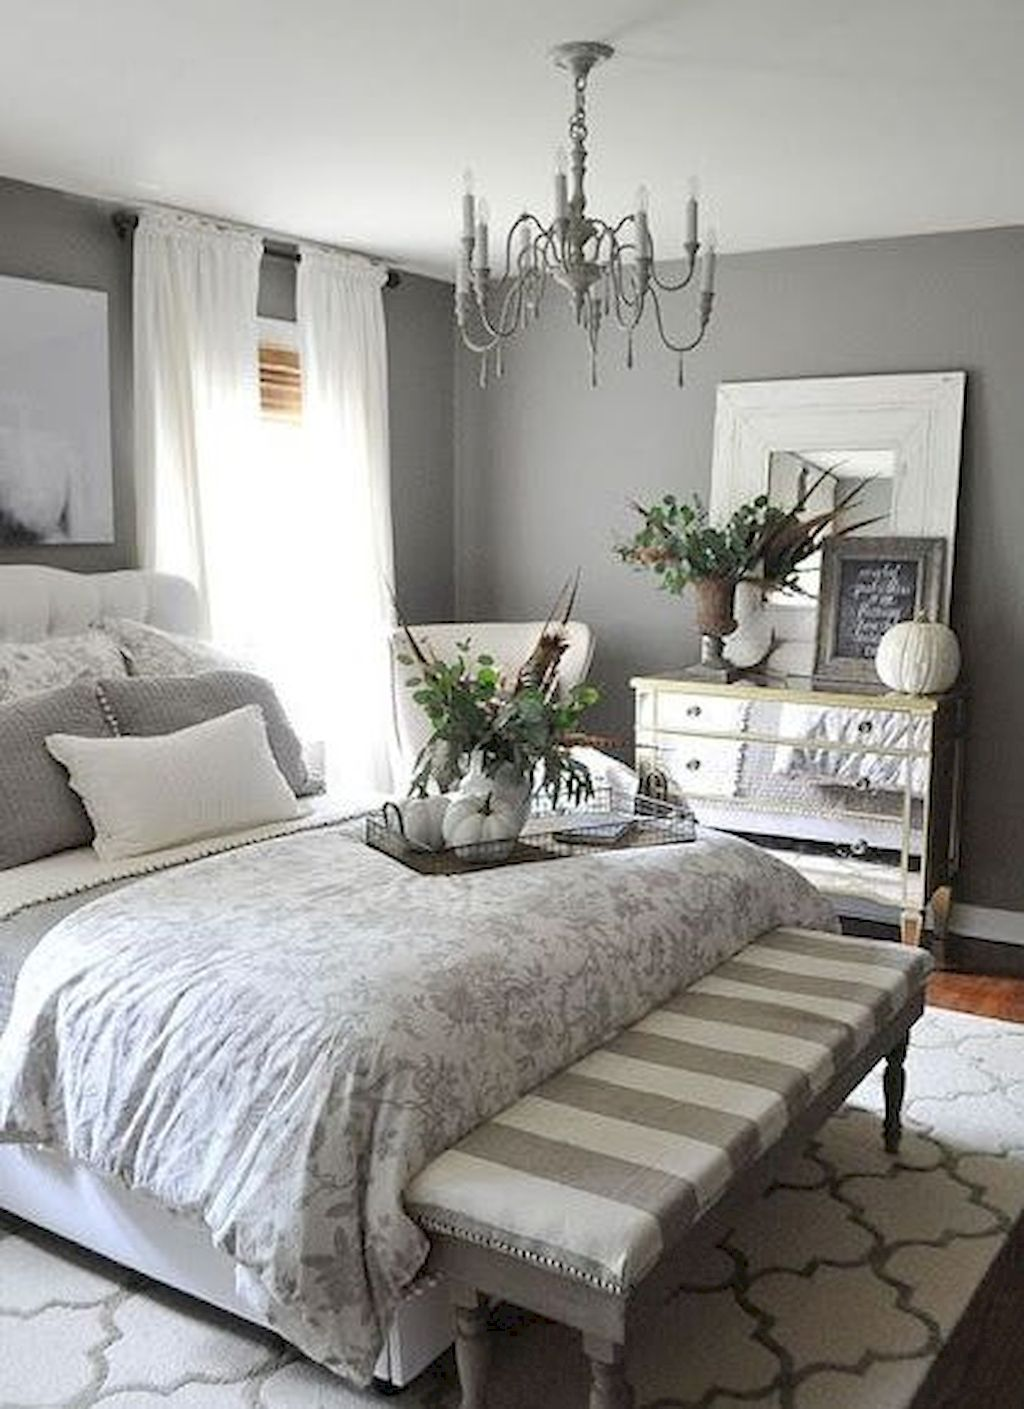 Bedroom Photos Decorating Ideas Awesome 35 Farmhouse Master Bedroom Decorating Ideas Https